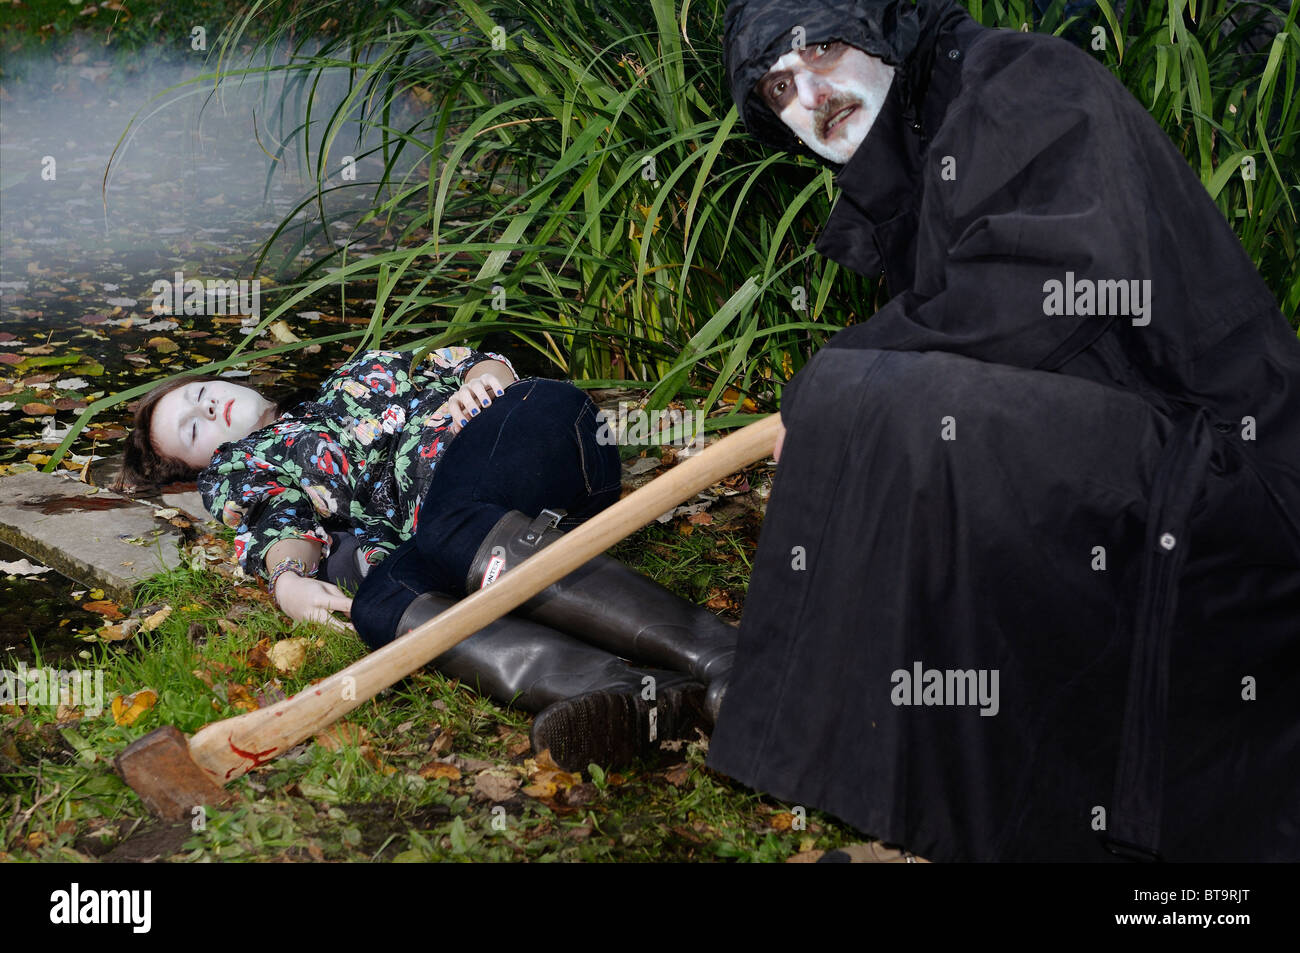 Murderous Evil Man In Black Coat With Axe Crouching Over A ...